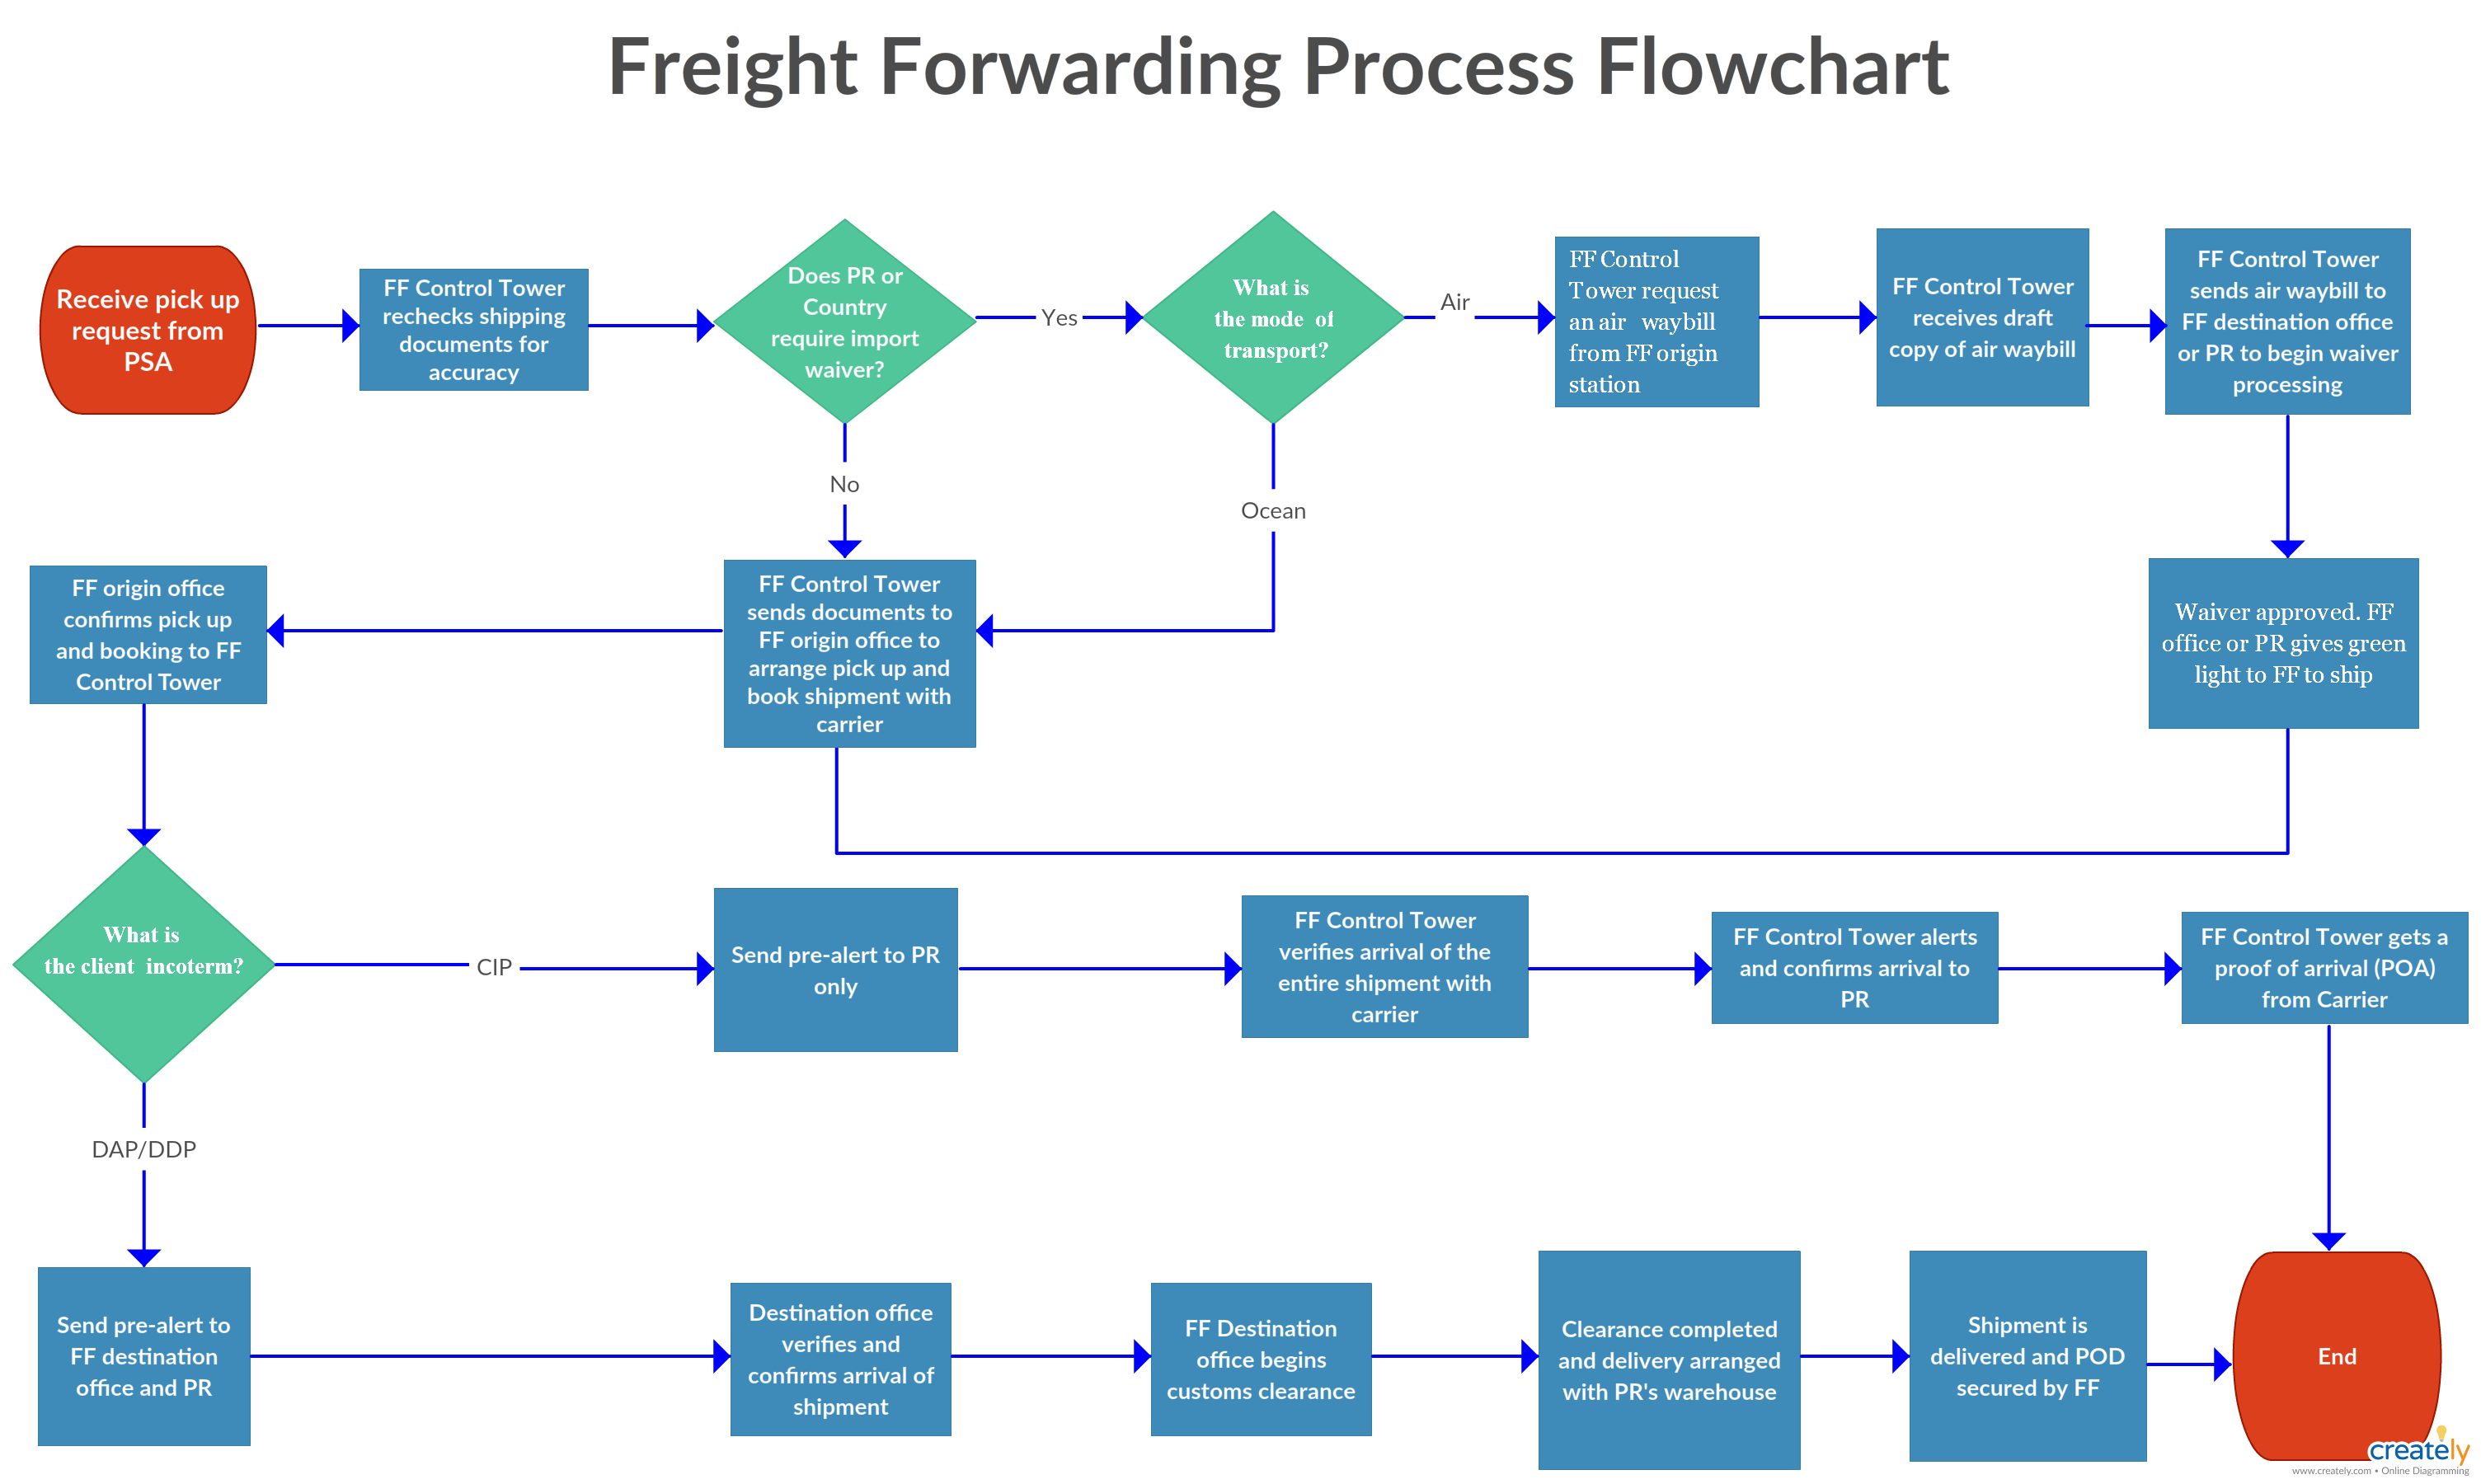 freight forwarding process flowchart the freight forwarding process is the flow of shipment and goods from two destinations carried out by a freight  [ 3009 x 1800 Pixel ]